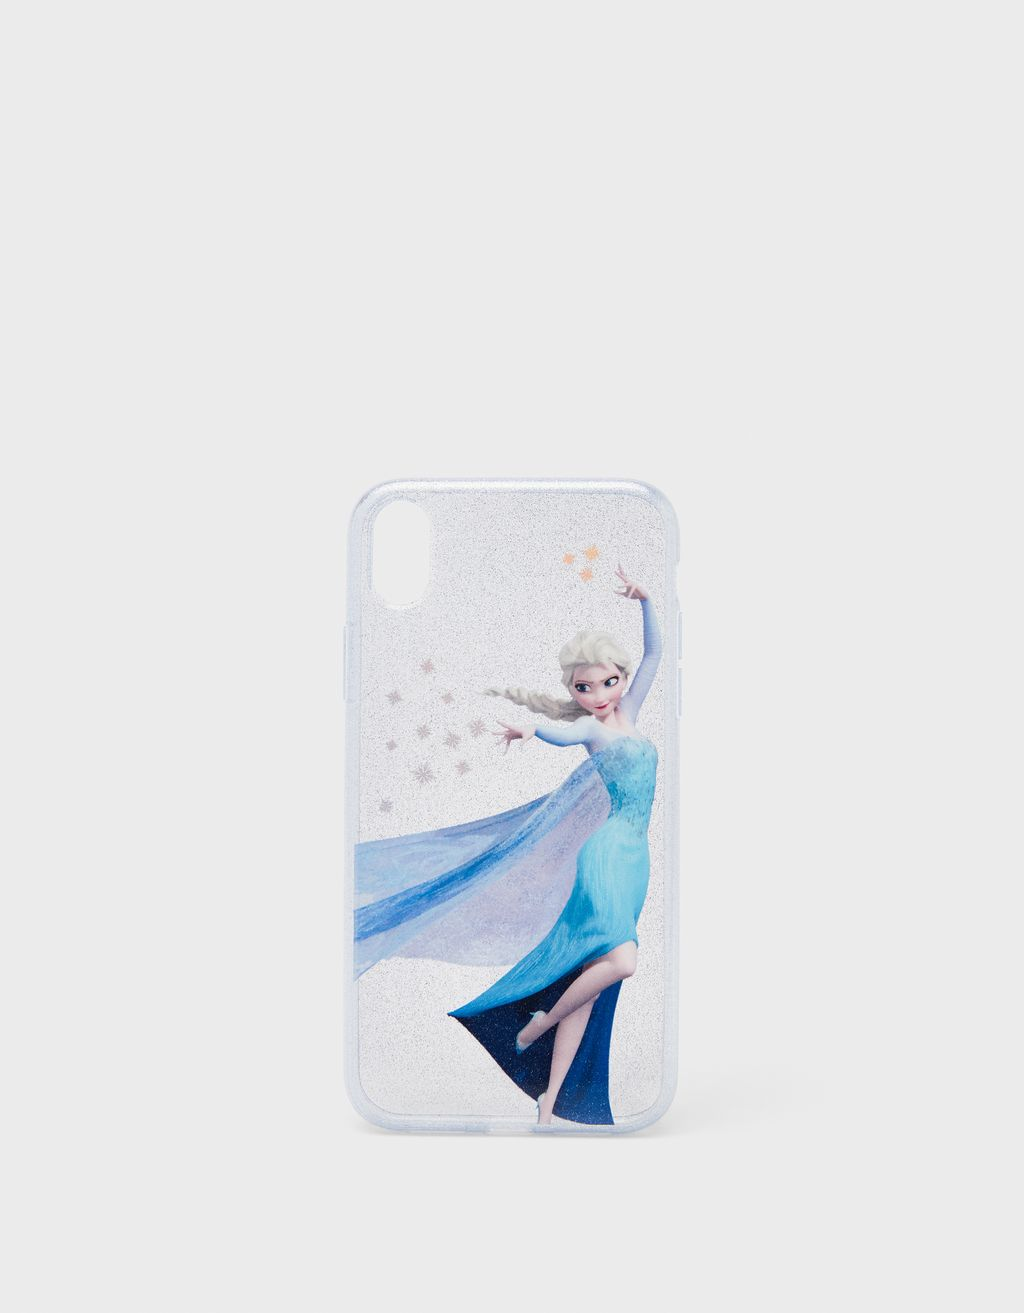 Coque La Reine des neiges iPhone XR